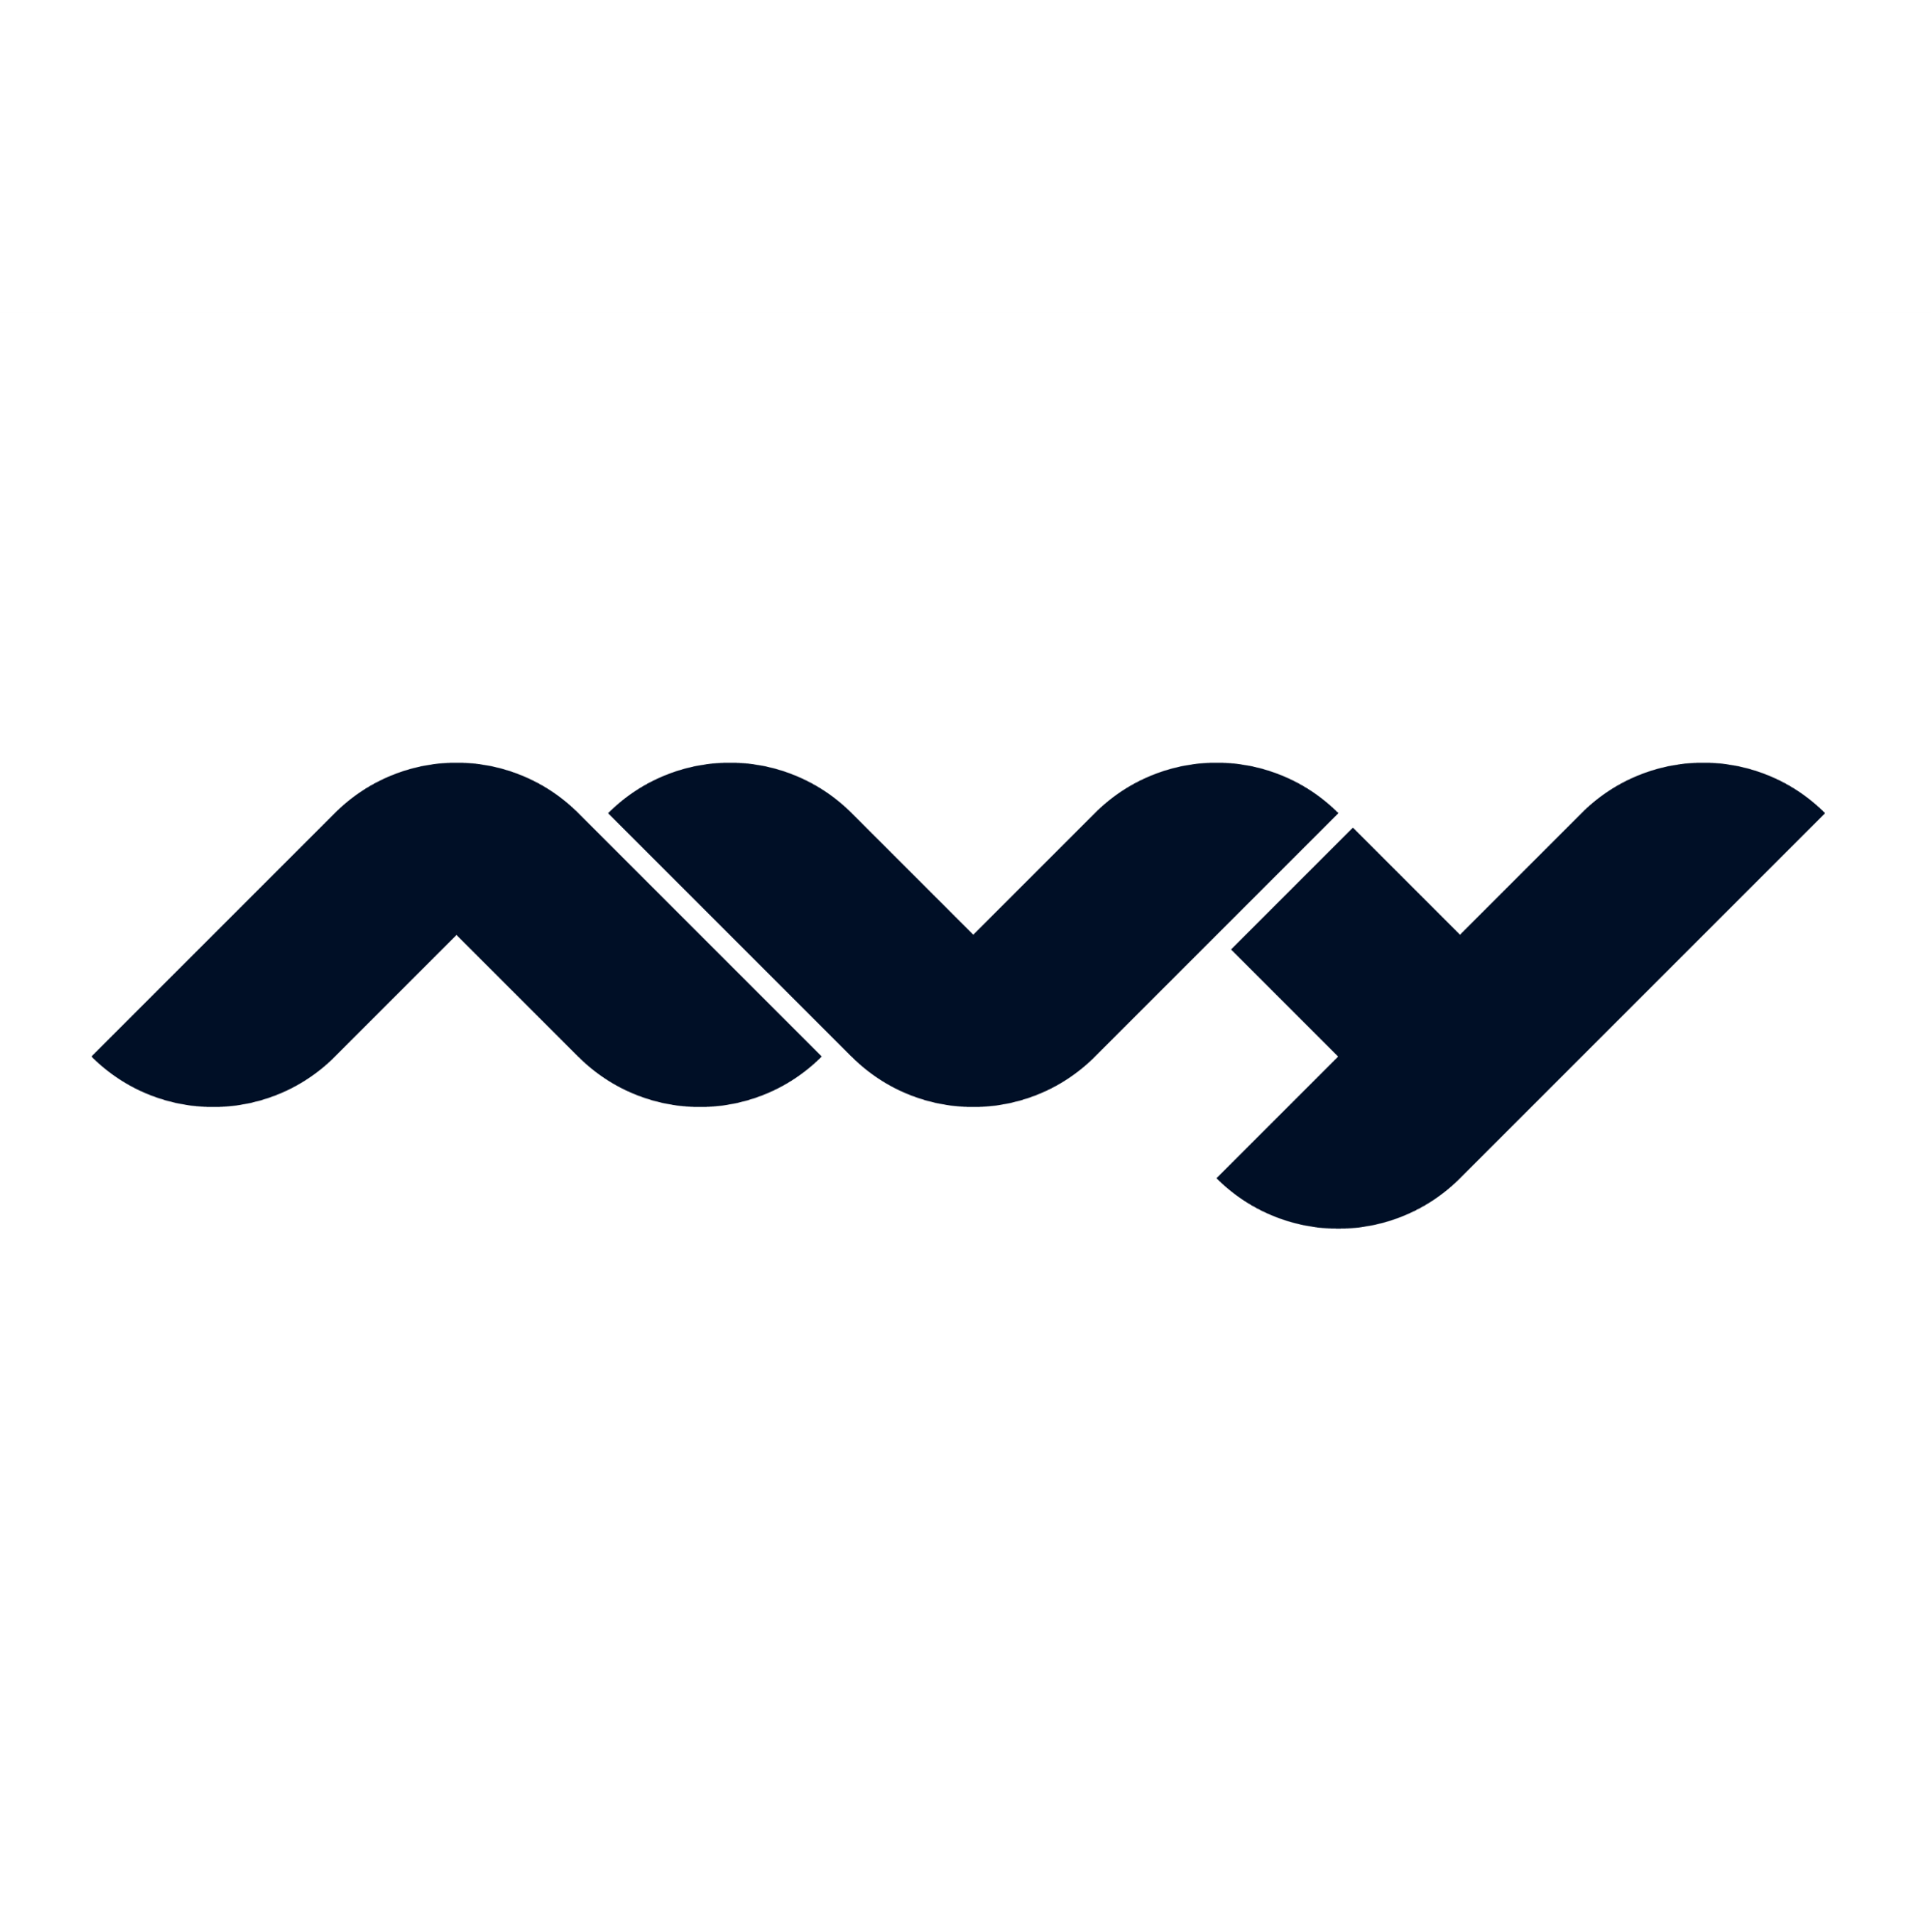 Copy of avy logo - Remco Van den Born.png